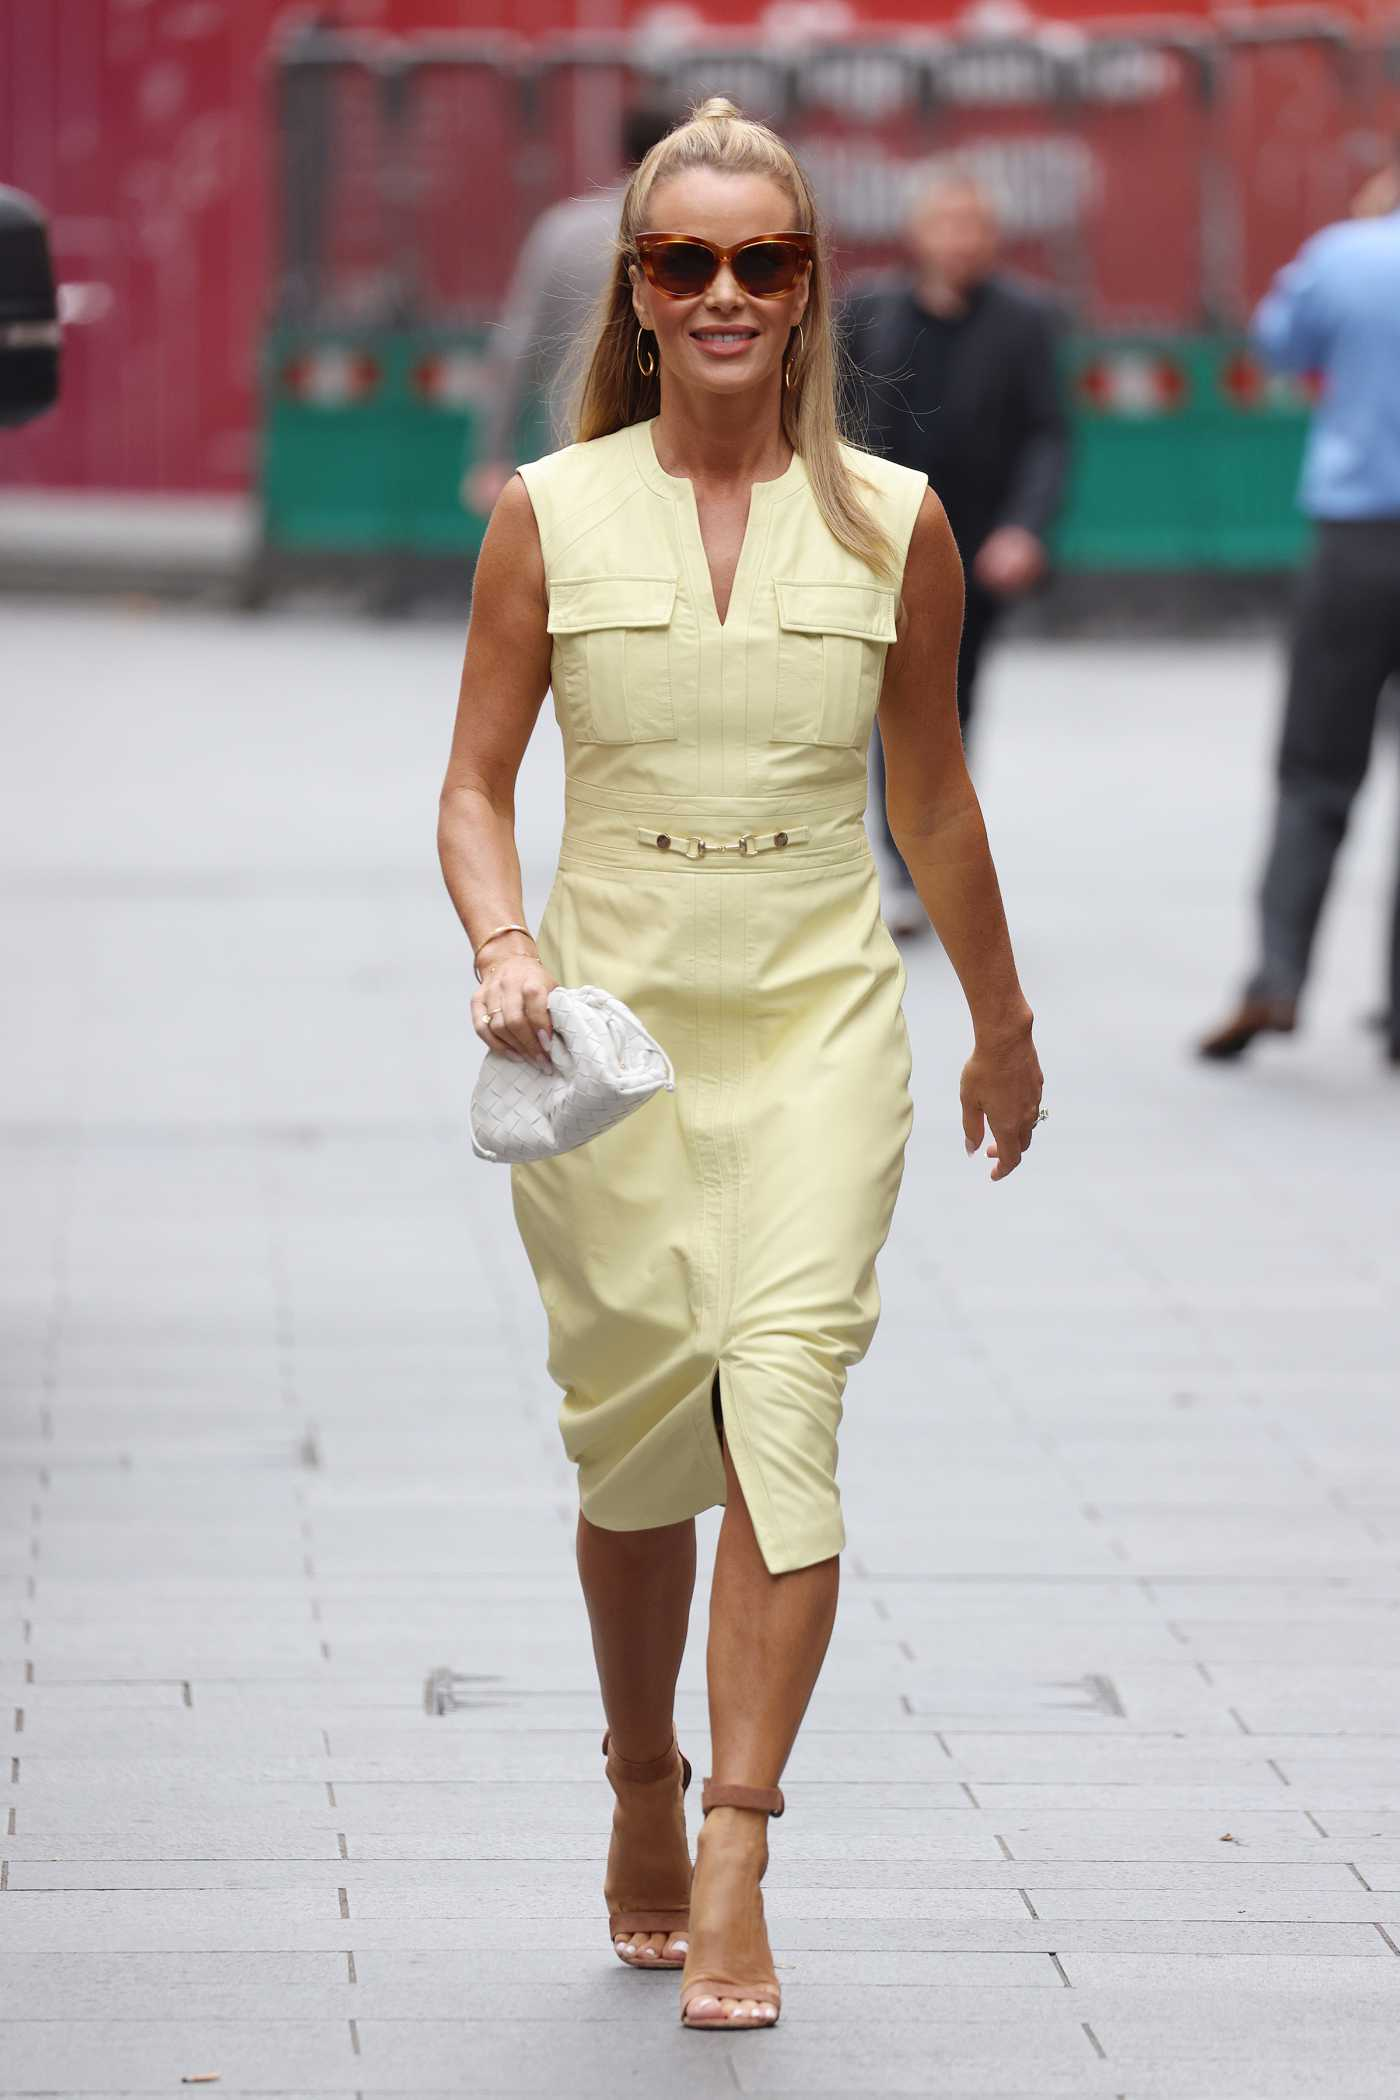 Amanda Holden in a Yellow Dress Arrives at the Global Radio Studios in London 09/15/2021